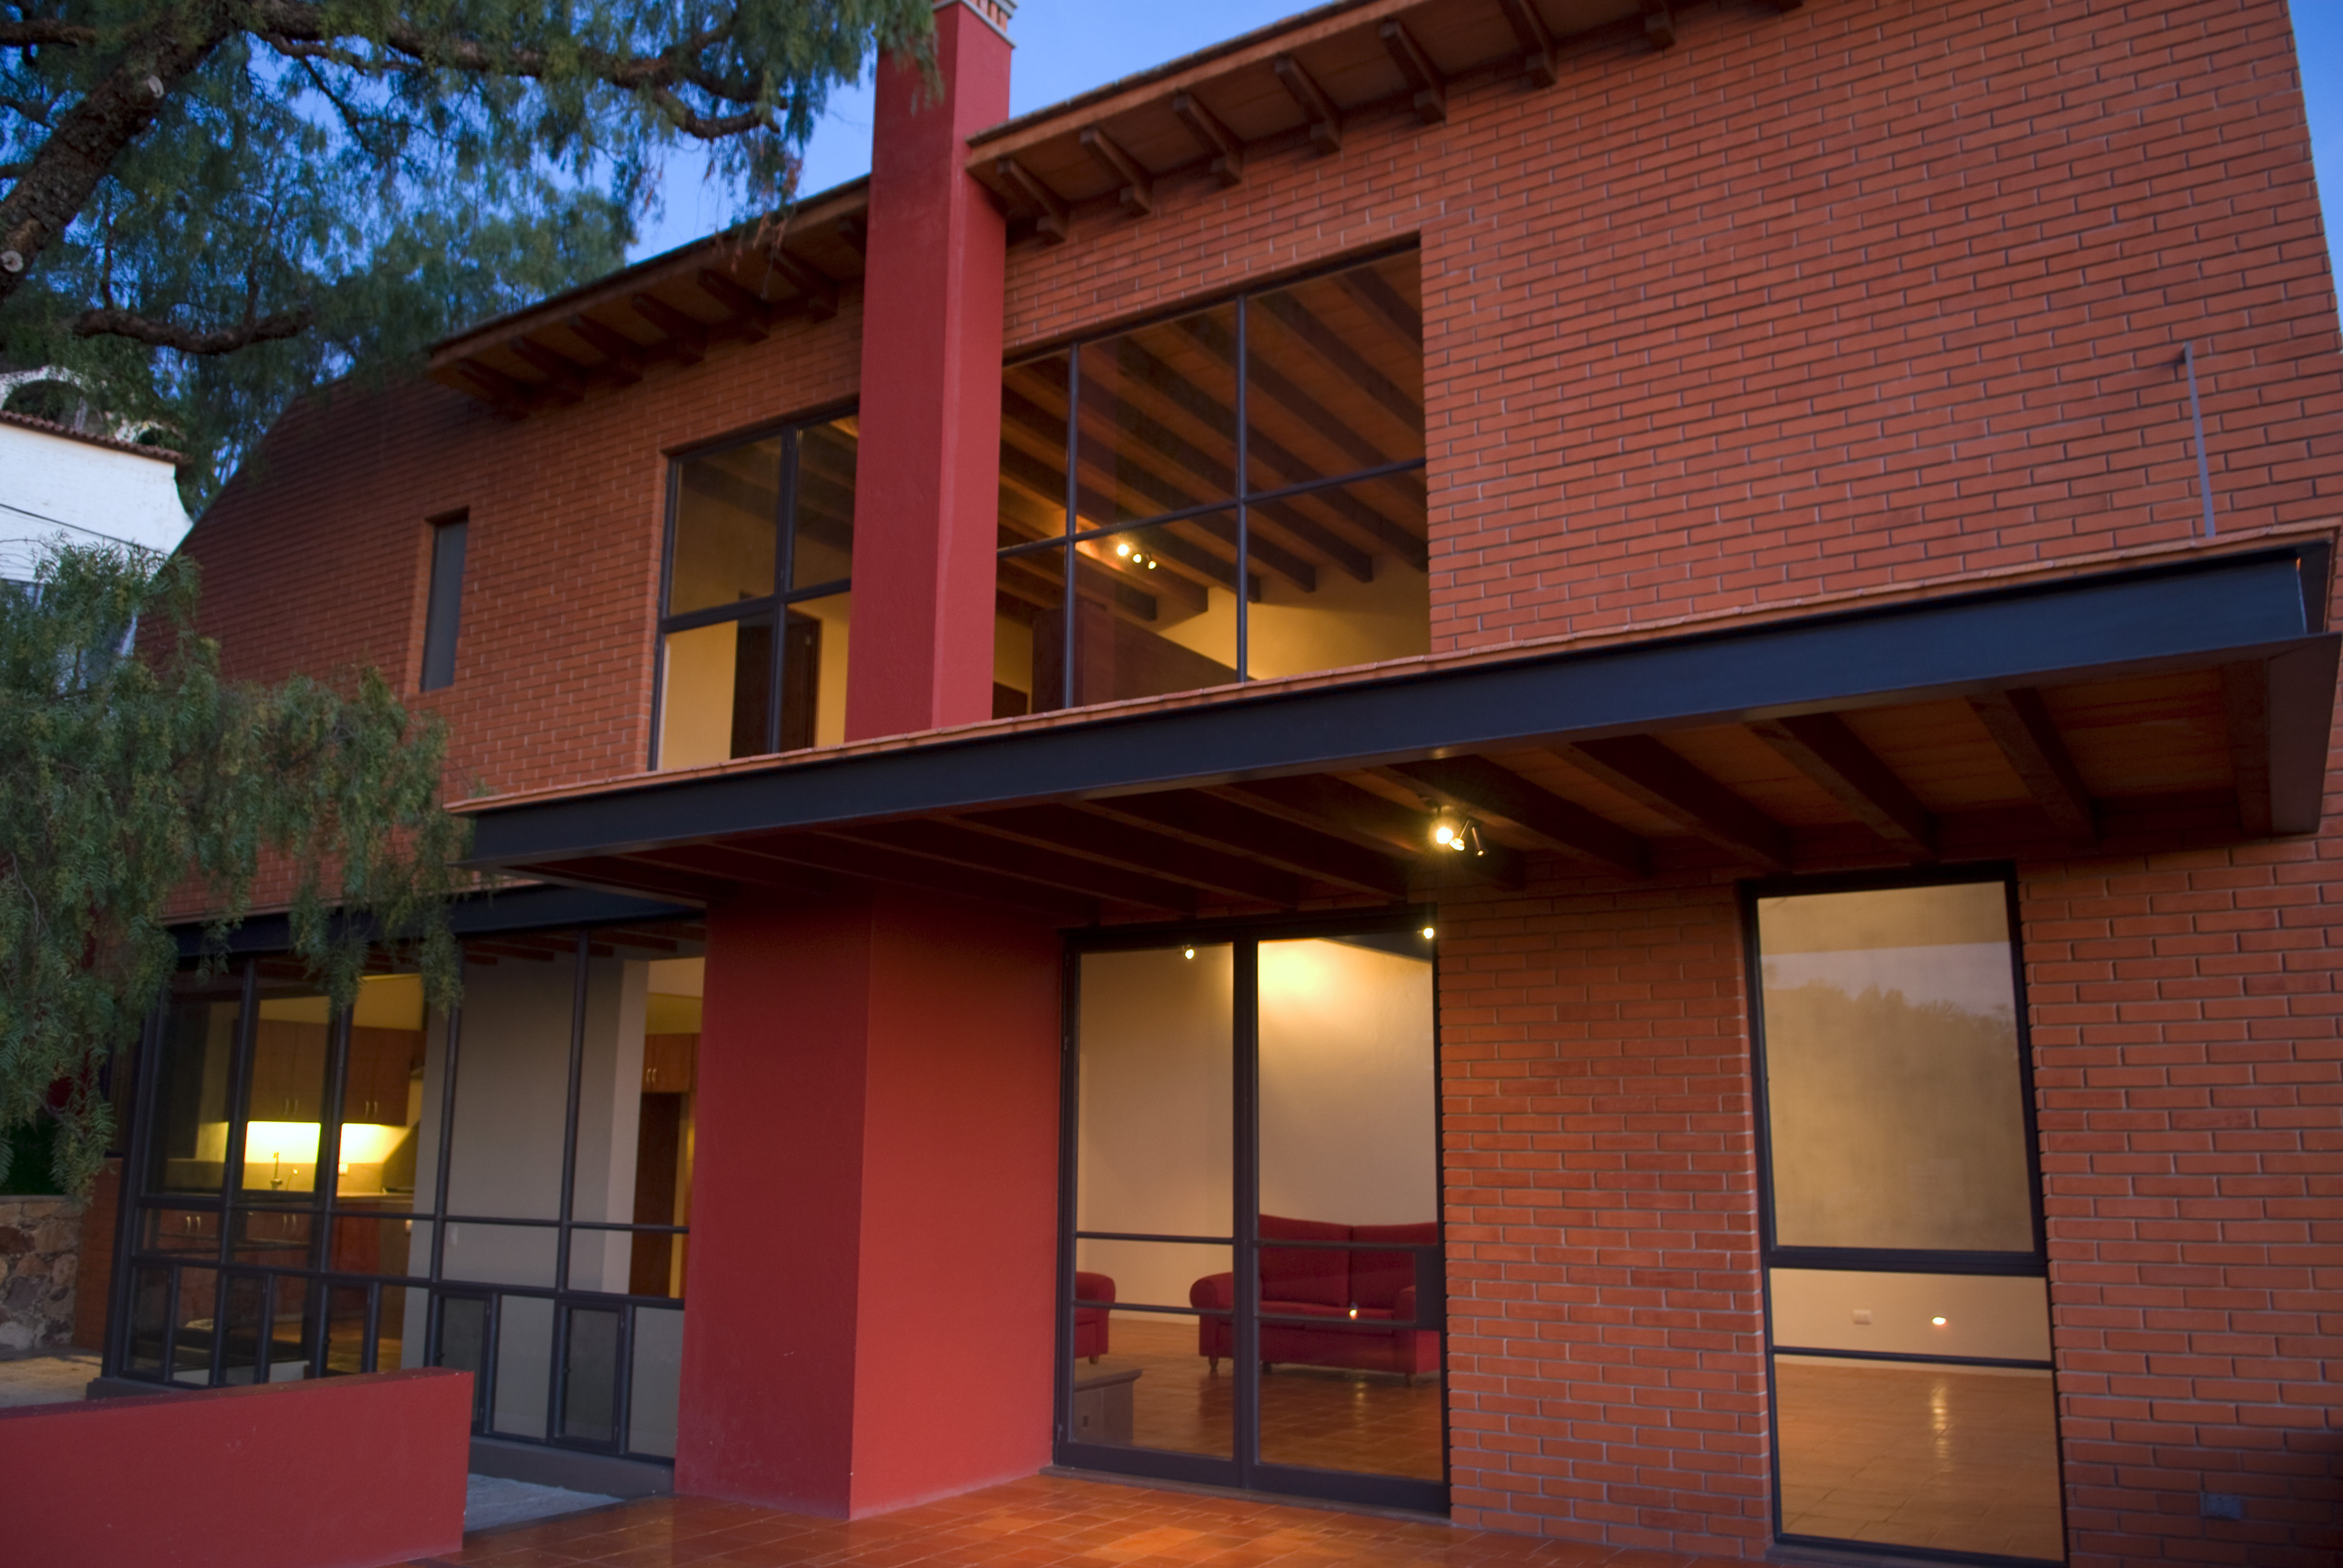 Single Family Home for Sale at Casa Camarena Atascadero San Miguel De Allende, Guanajuato, 37740 Mexico